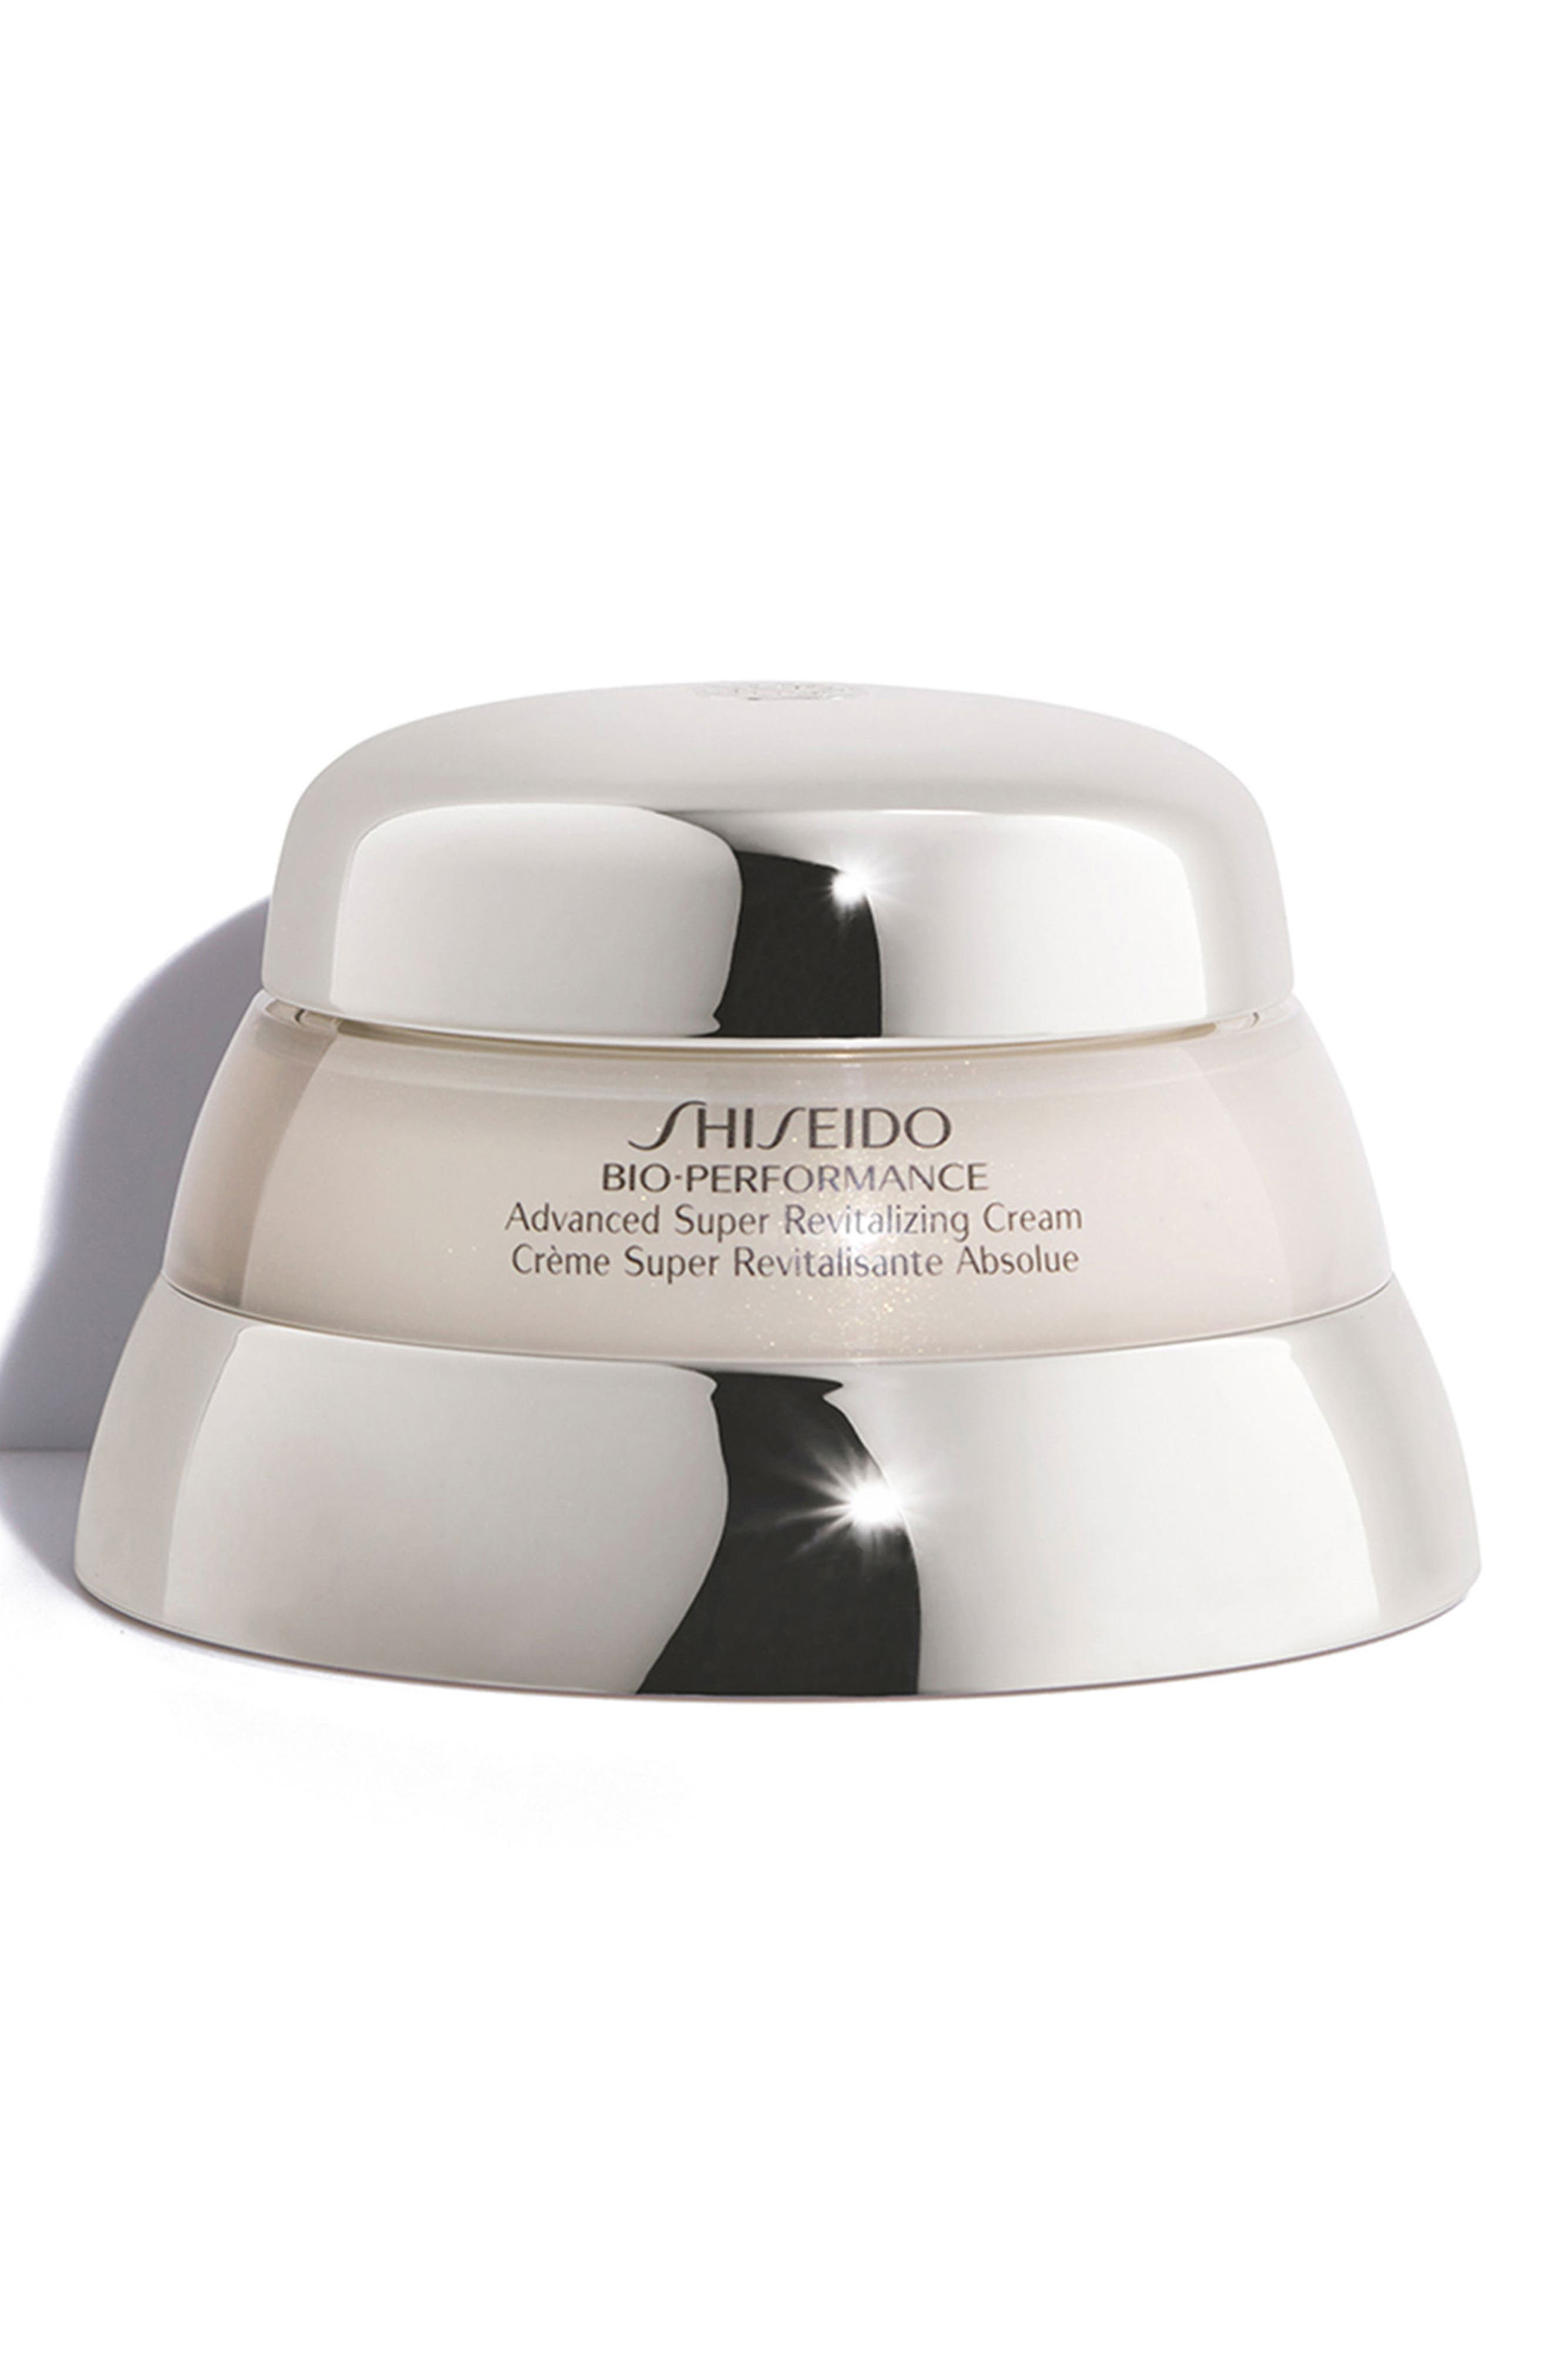 'Bio-Performance' Advance Super Revitalizing Cream,                         Main,                         color, No Color